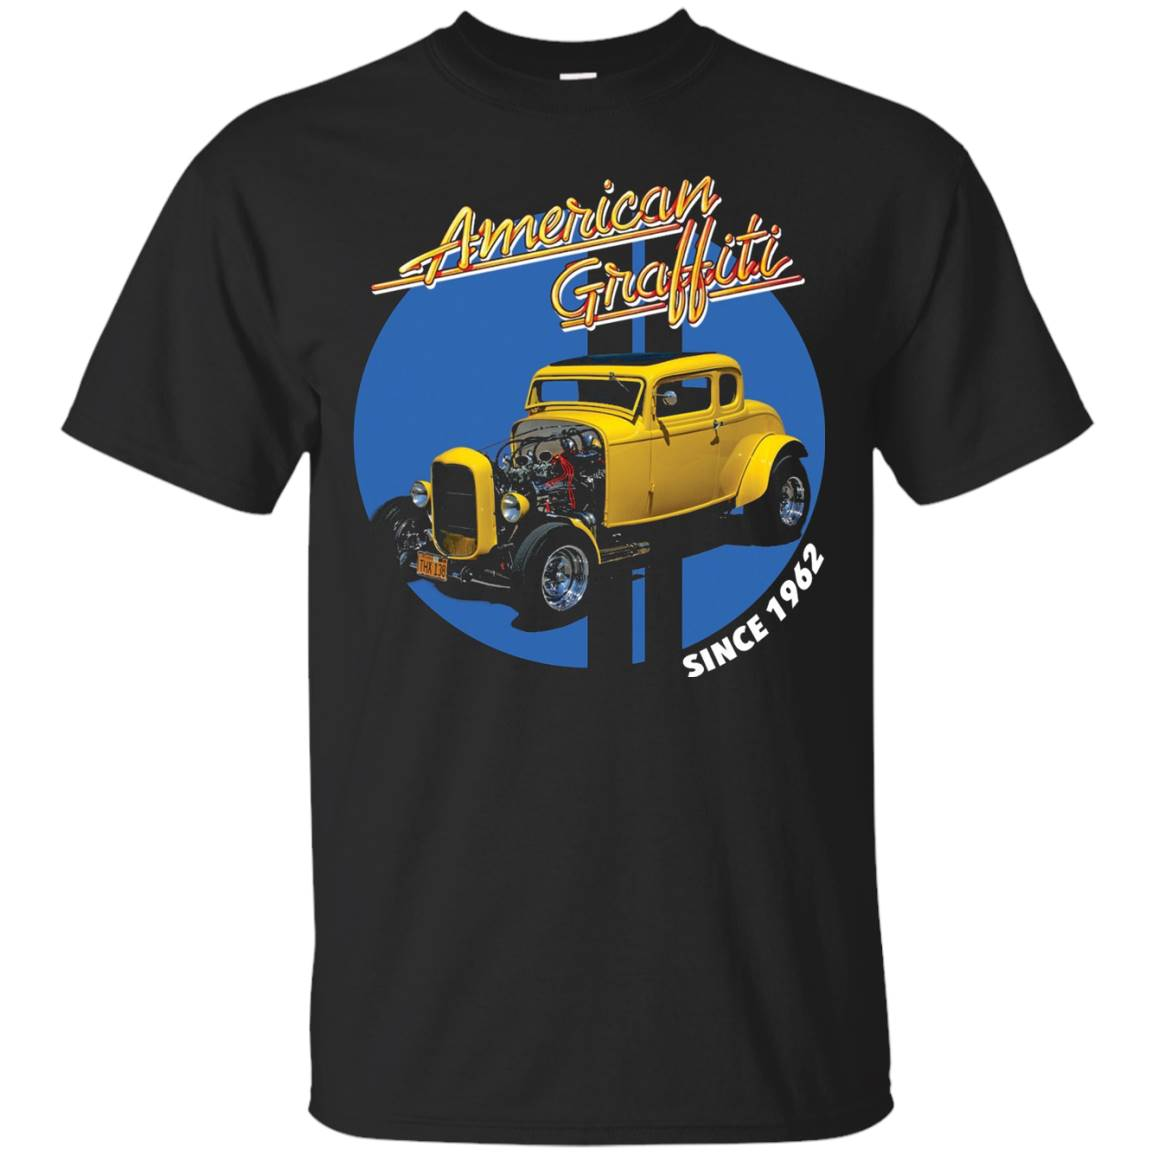 AMERICAN GRAFFITI – SPEED SHOP – T-Shirt